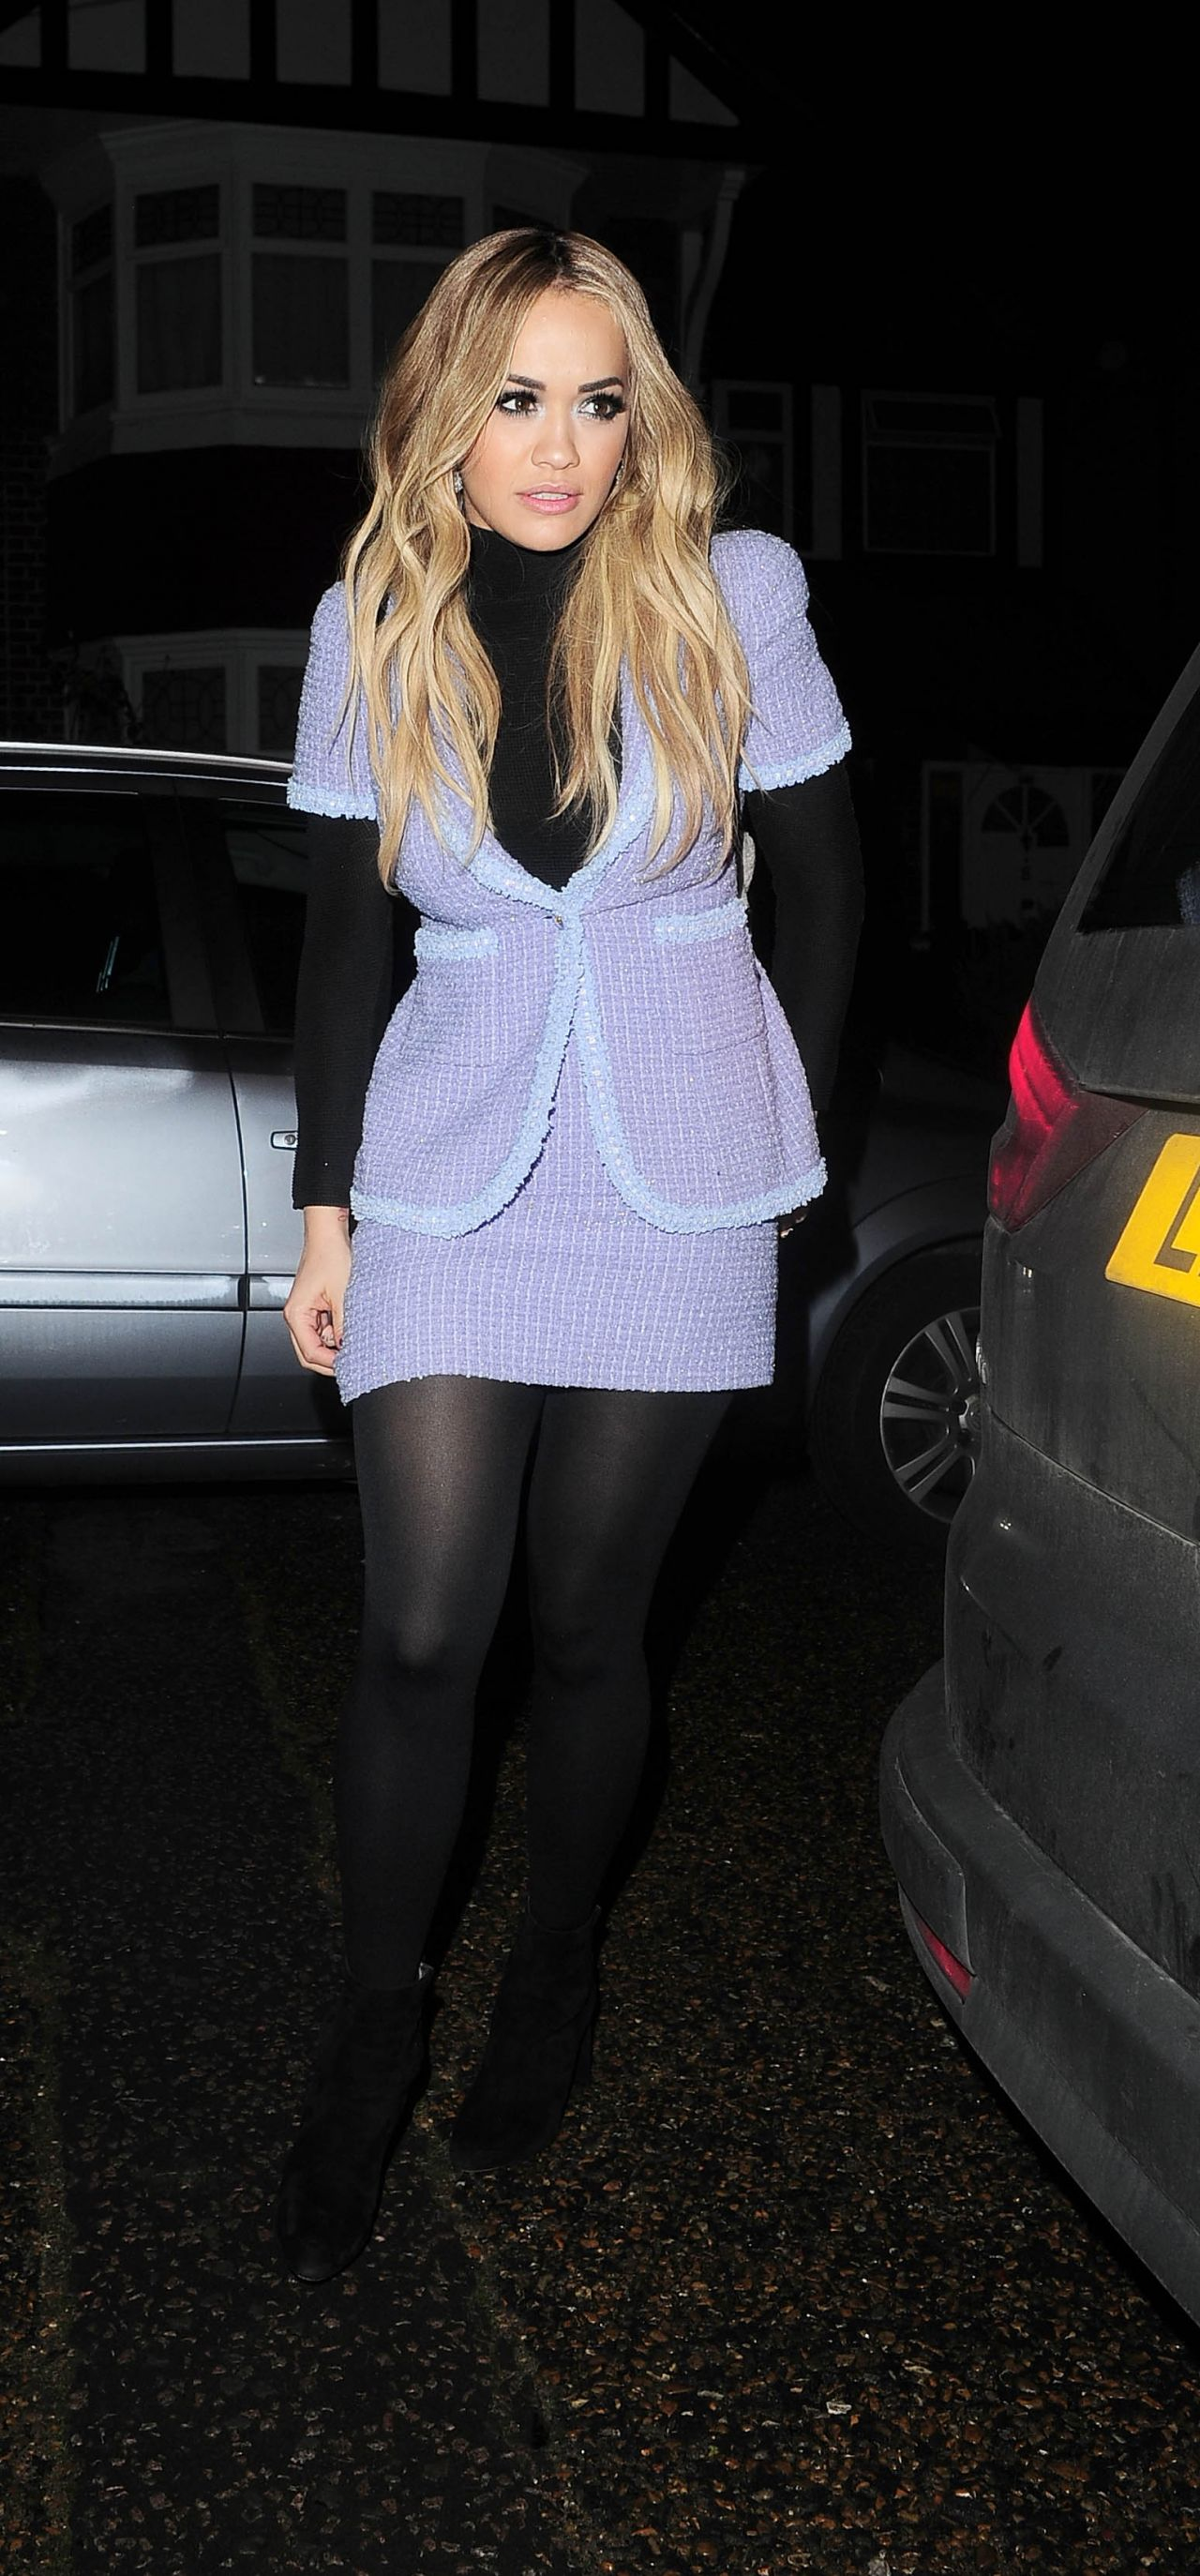 rita-ora-style-out-in-london-12-13-2015-_1